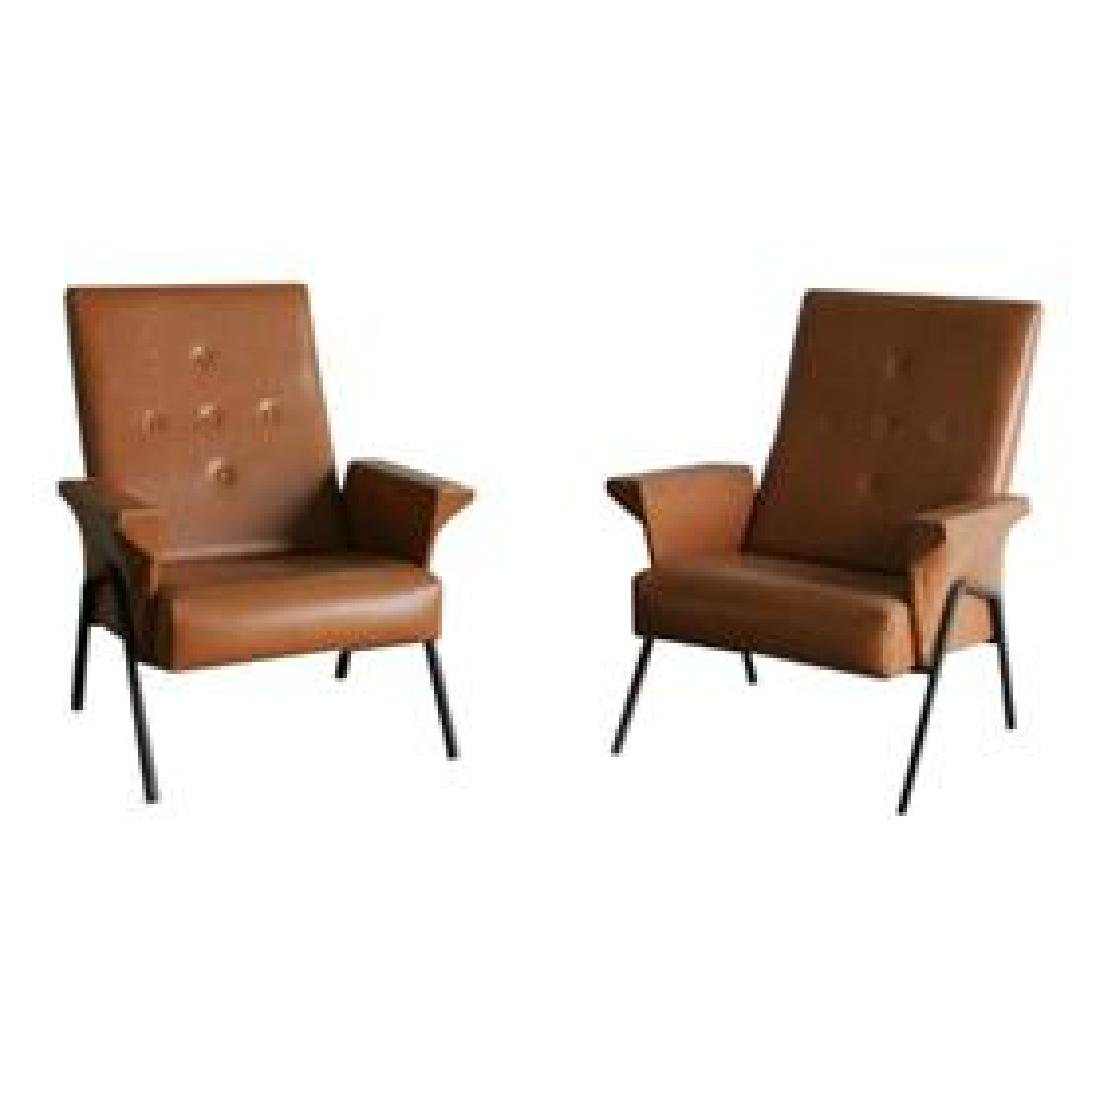 Pr. Med. Italian Lounge Chairs